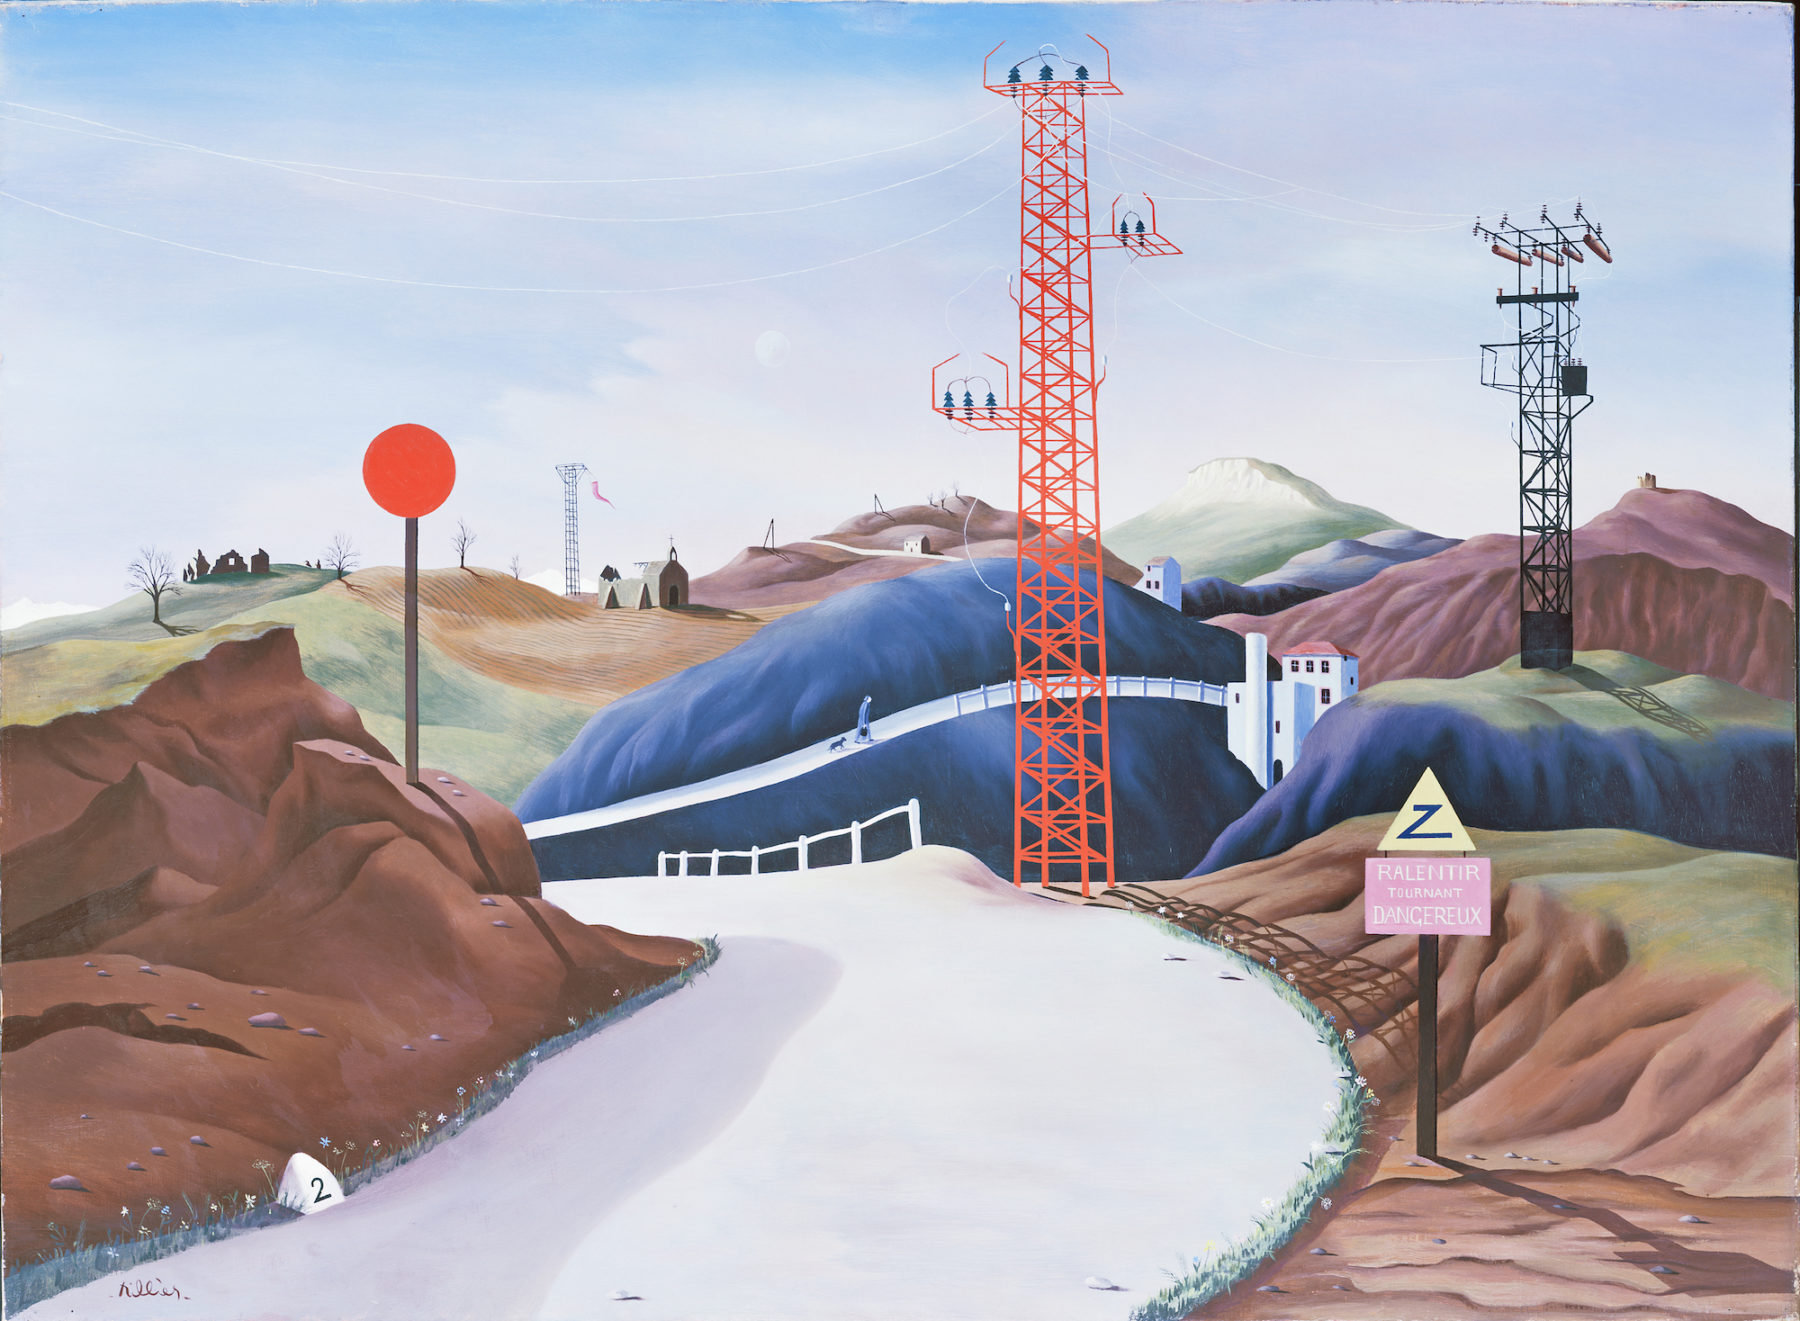 A bright cream coloured track road criss crosses a hilly landscape. The colours of the hills varies from brown in the foreground through deep blue-grey in the centre to red and green in the background. Electricity pylons (one red and one black) and a lolly-stick road sign cut through the landscape. Whitewashed buildings sit between the hills and ruined farm buildings and a church lie in the background. A road sign in the foreground declares 'Ralentir Tournant Dangereux' (meaning dangerous corner).